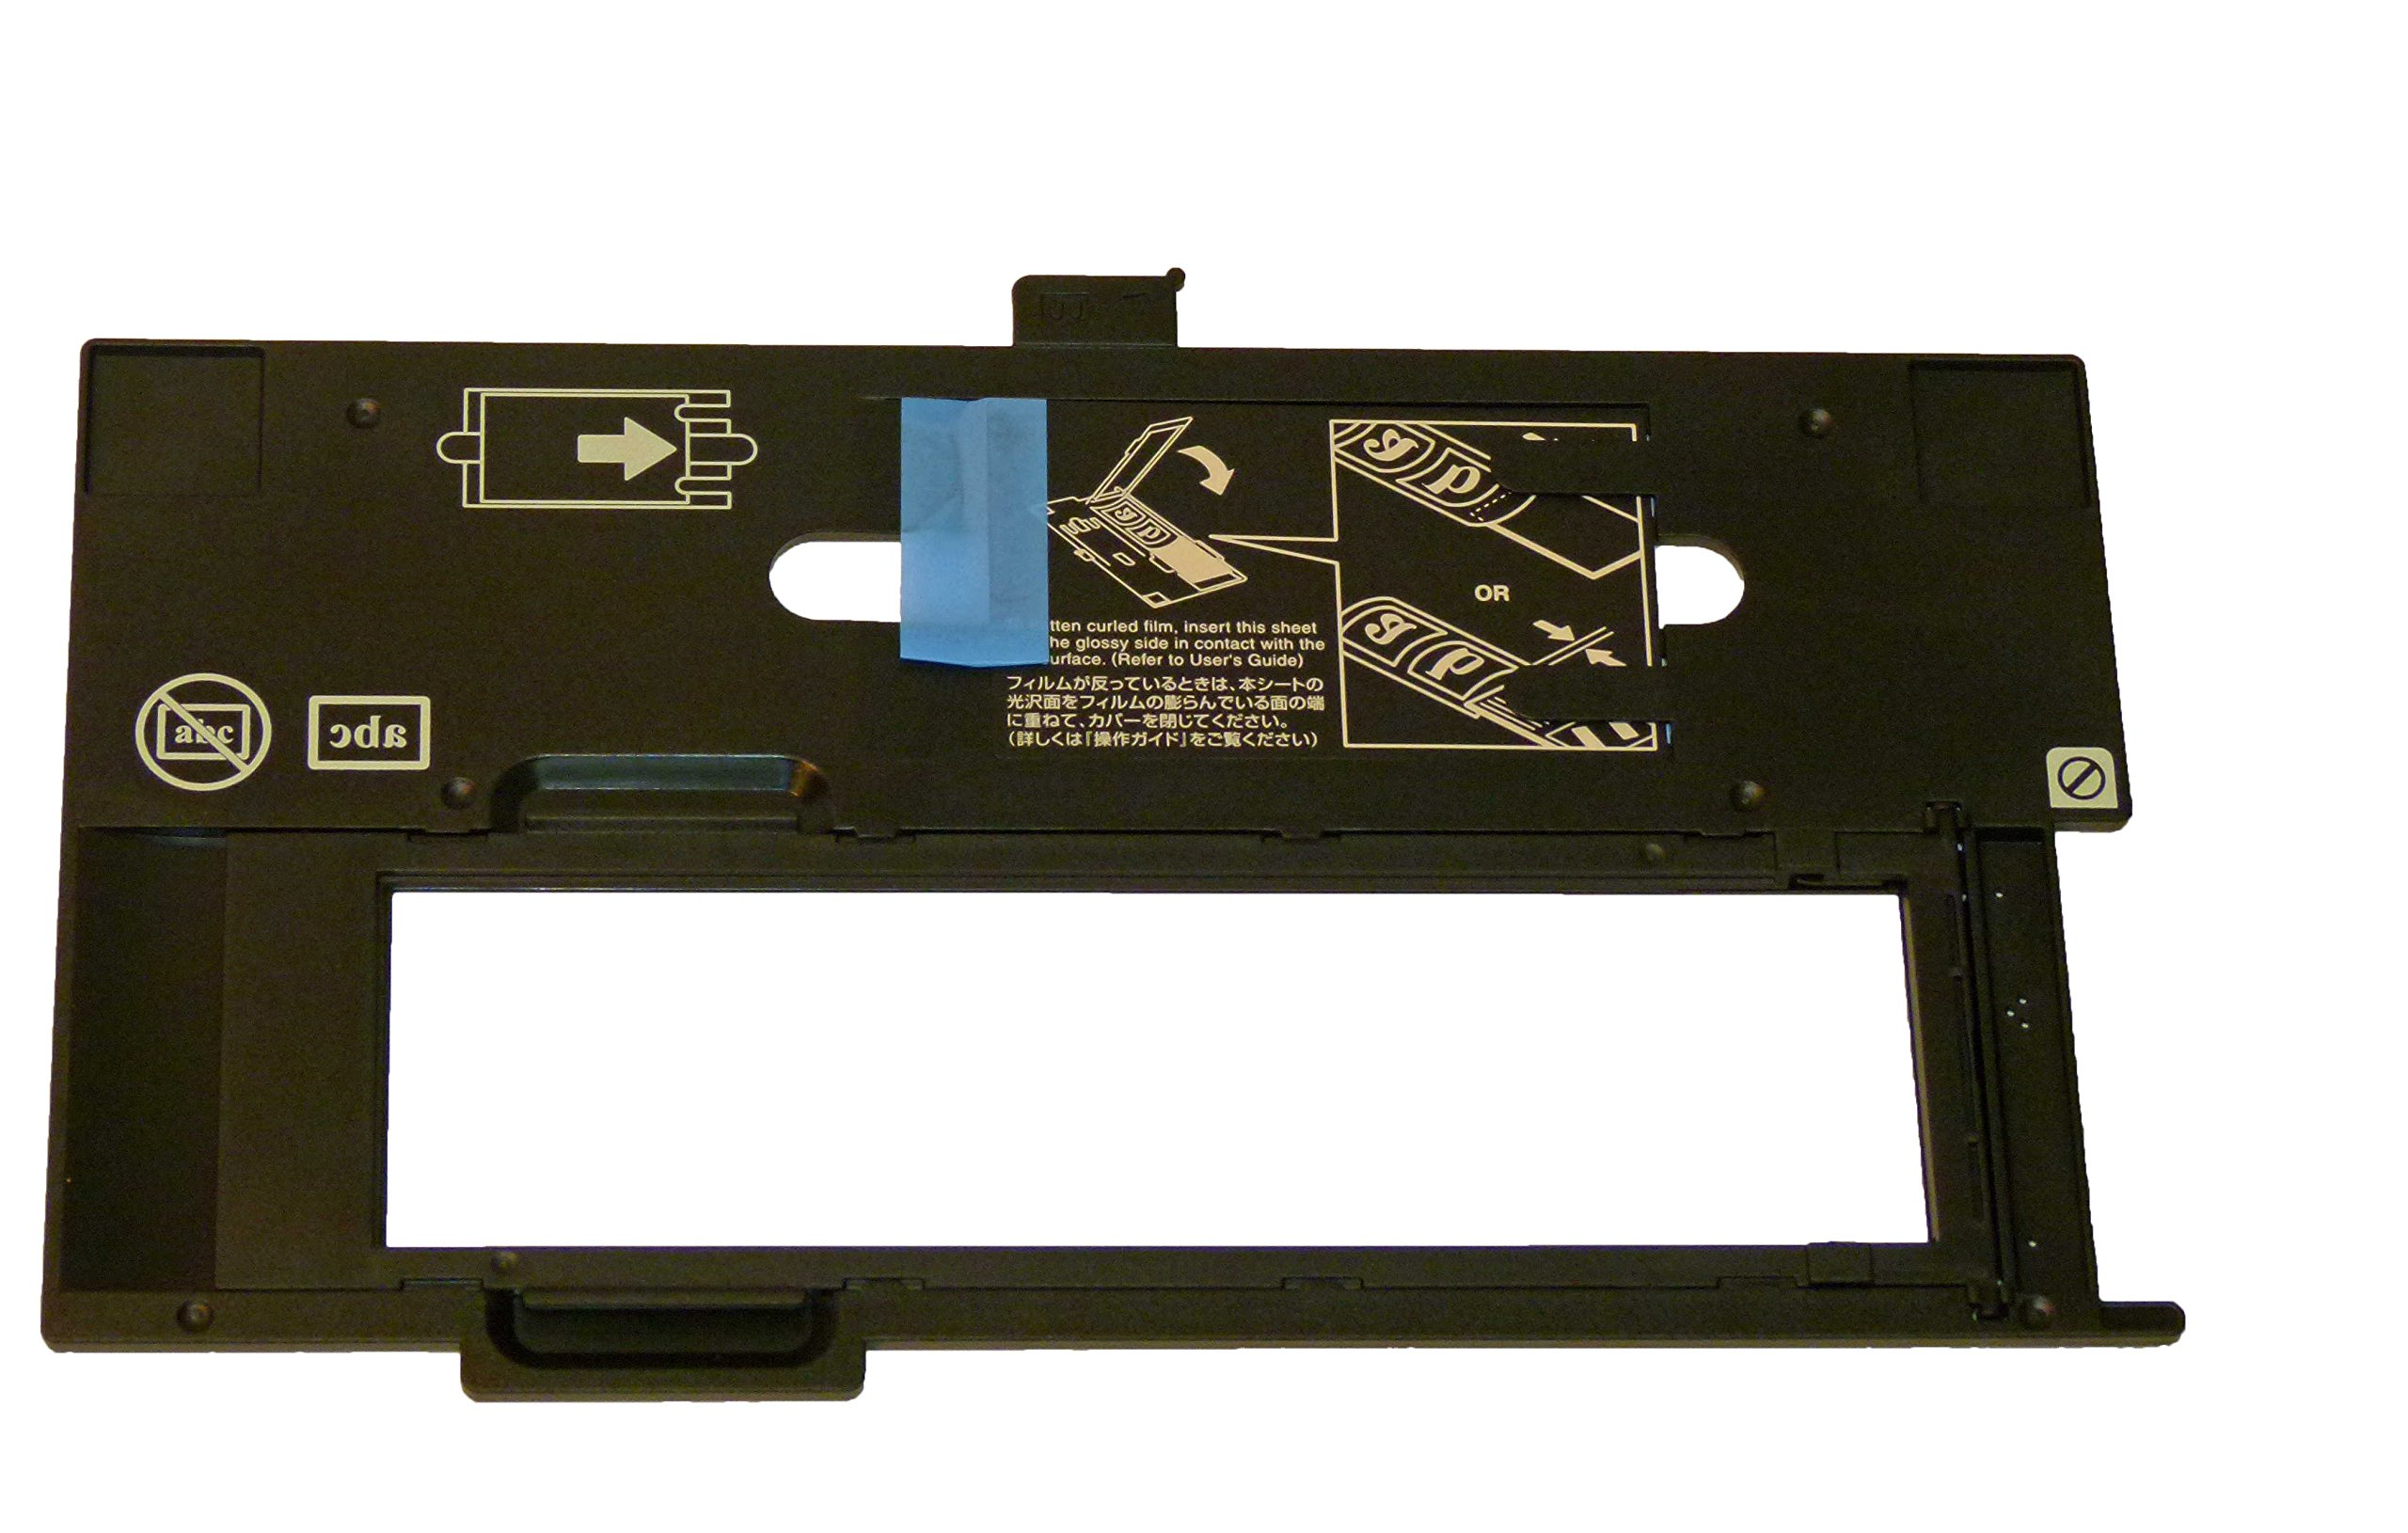 OEM Epson Scanner 120 Holder Shipped with Perfection v550, Perfection v600 by Epson